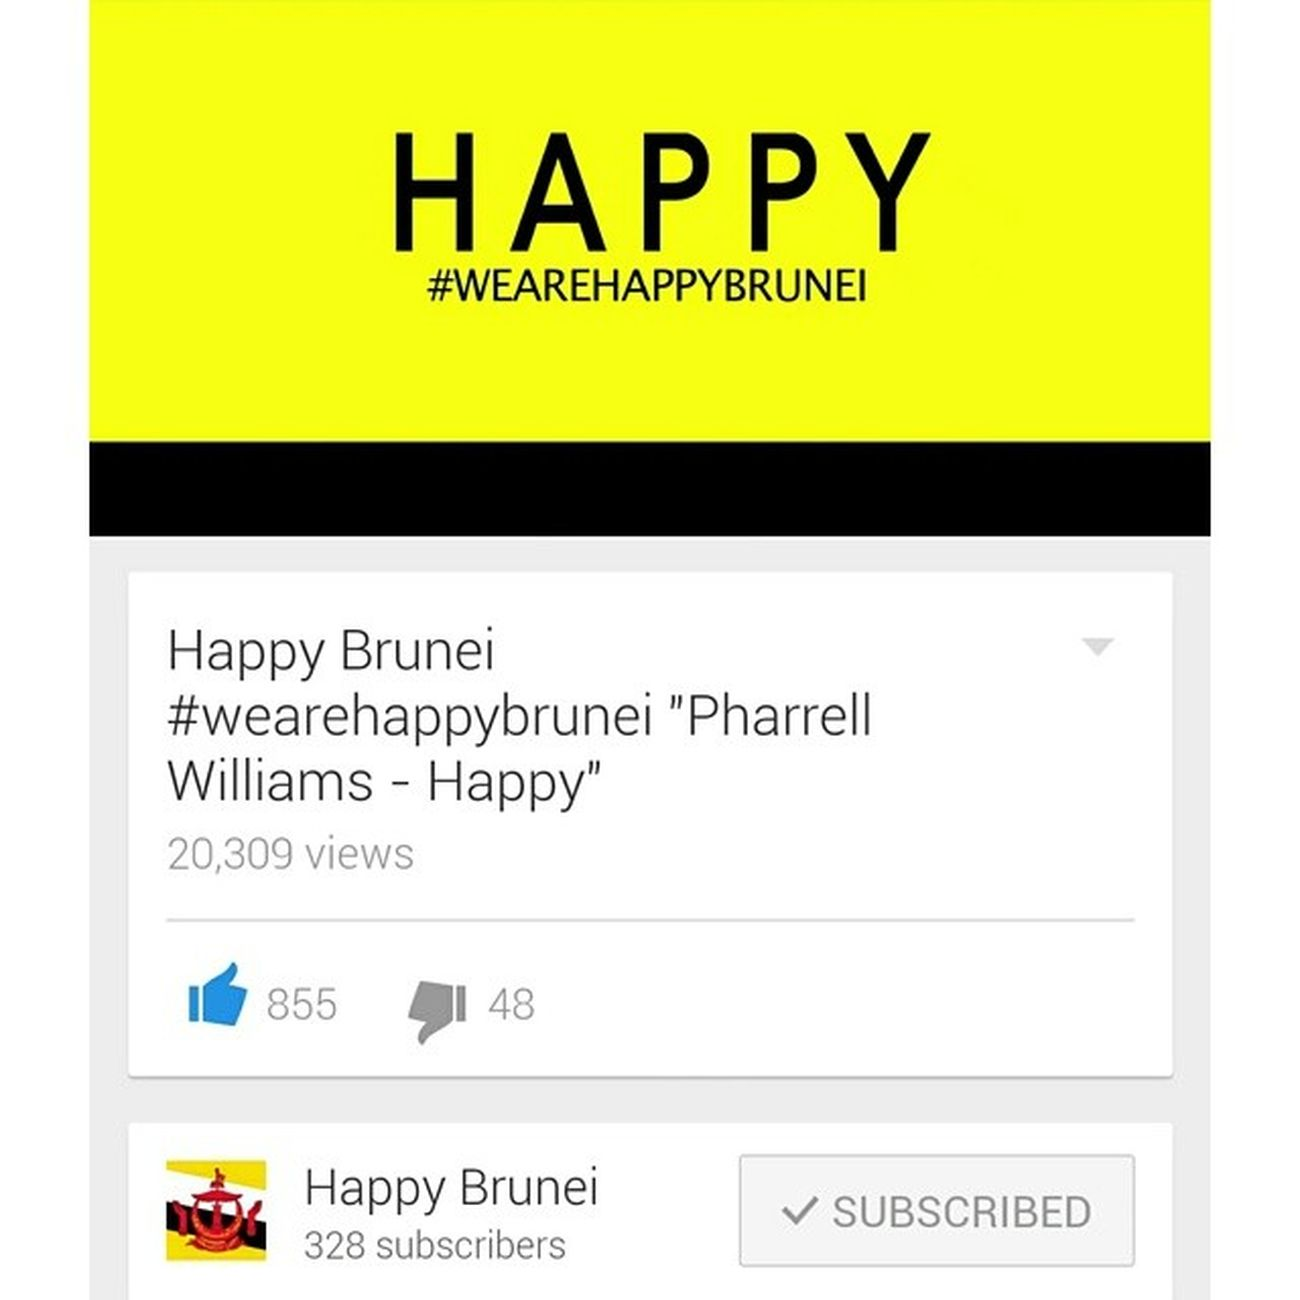 If you're happy and you know it clap your hands... 20k+ views and counting. Brunei Wearehappybrunei HappyBrunei HappyBN bruneiunited HappeningsBN InstaBruDroid Andrography